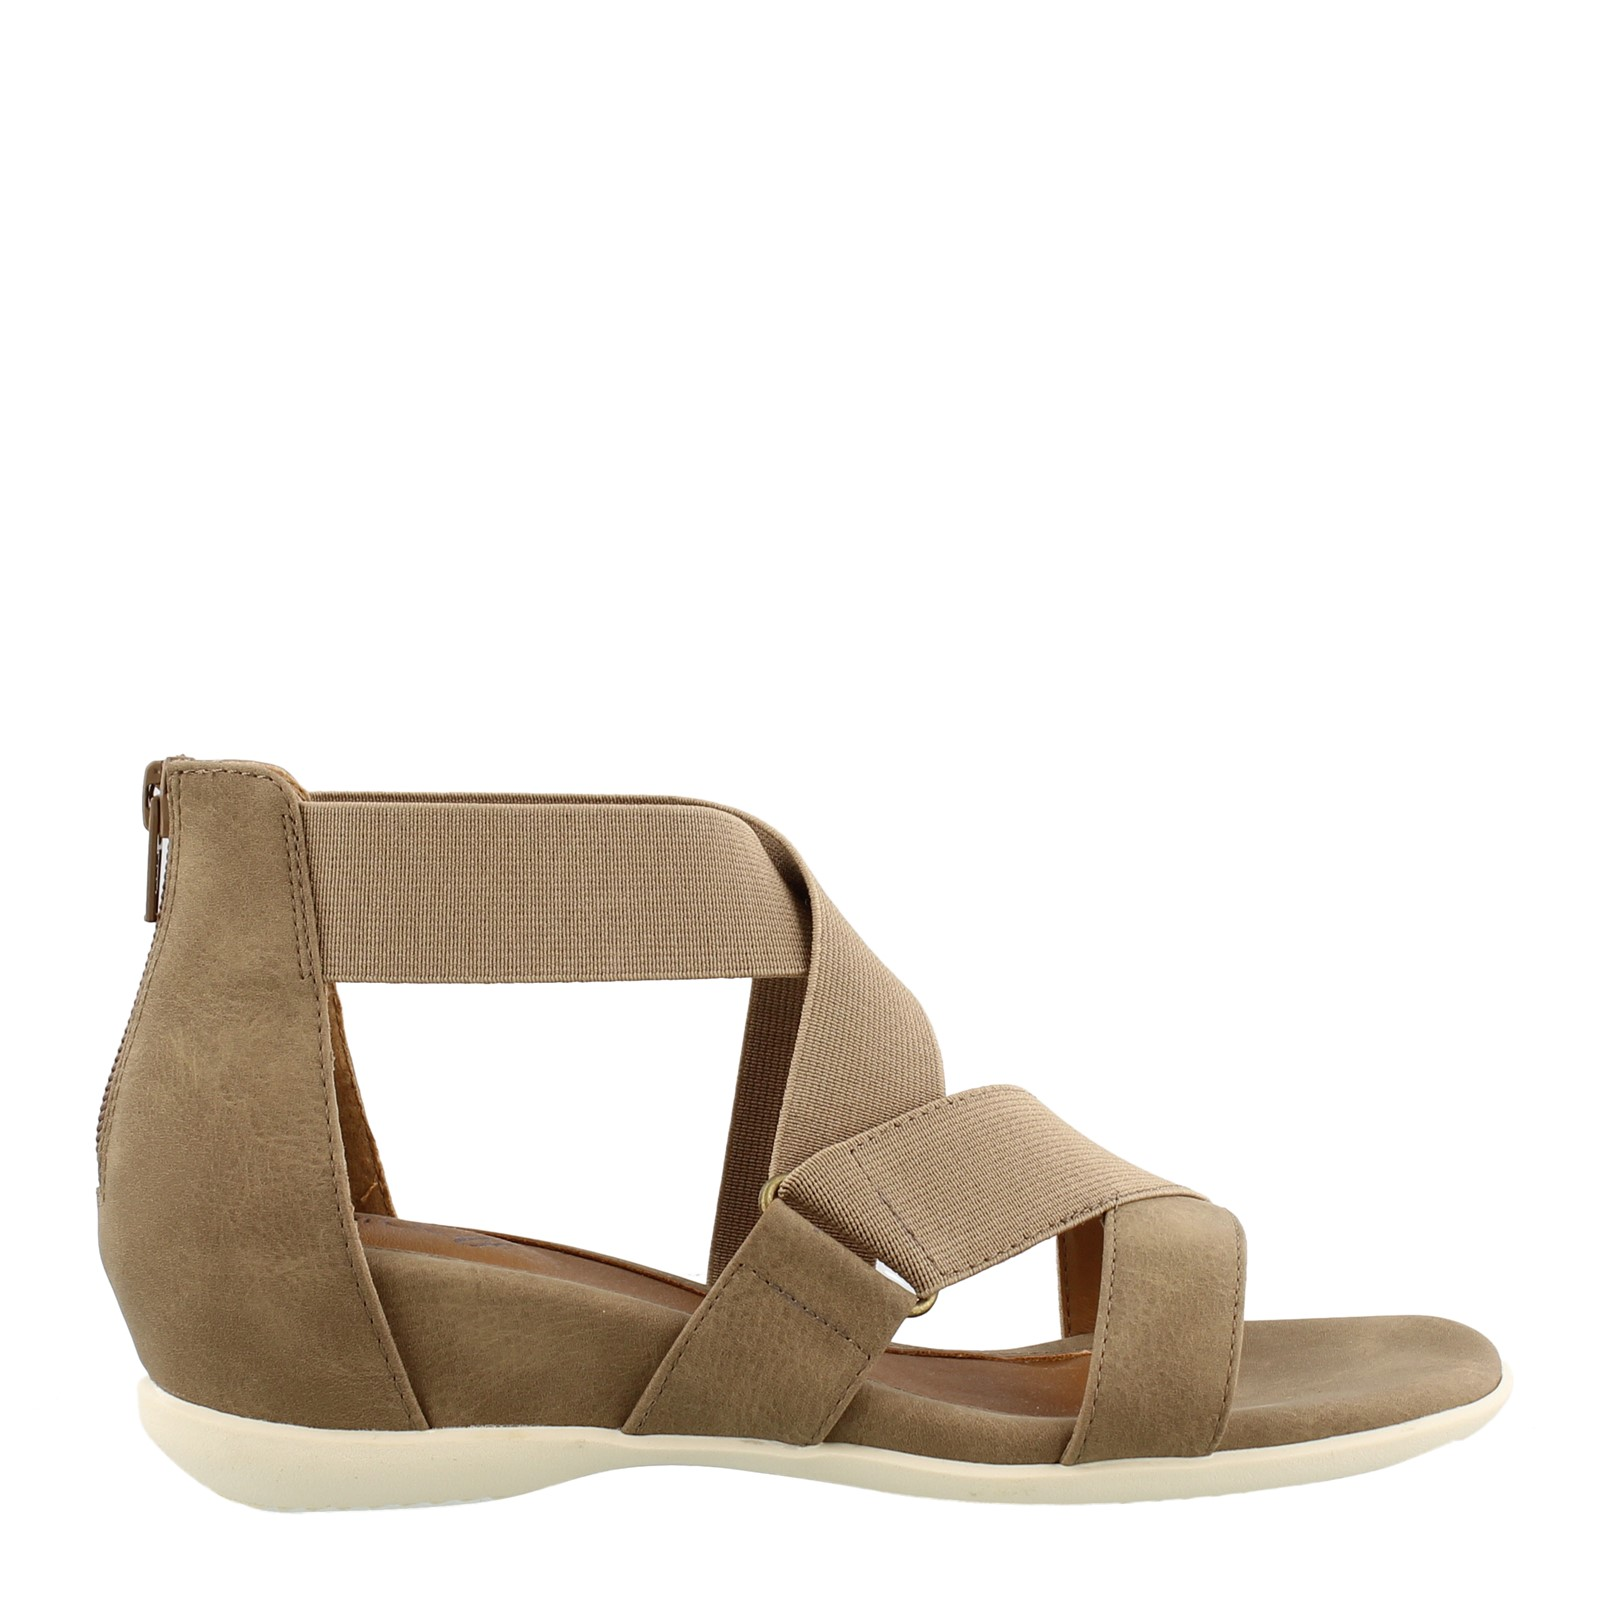 Women's Eurosoft, Rossie Sandals